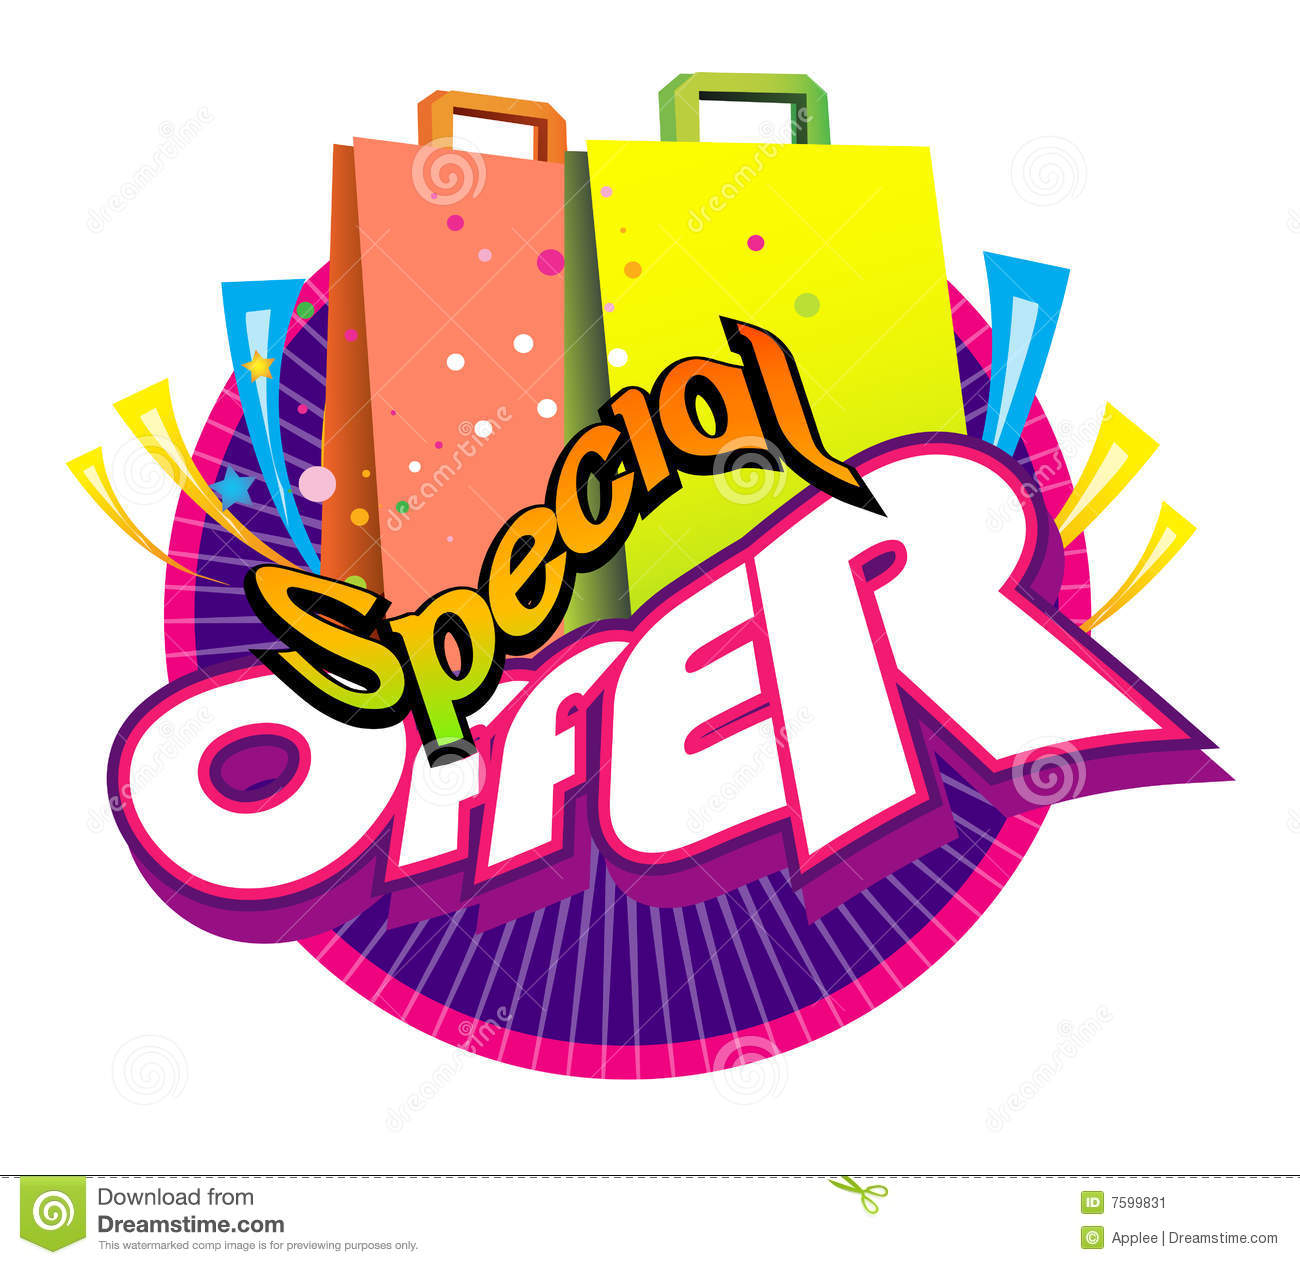 Offer: Special Offer Stock Image